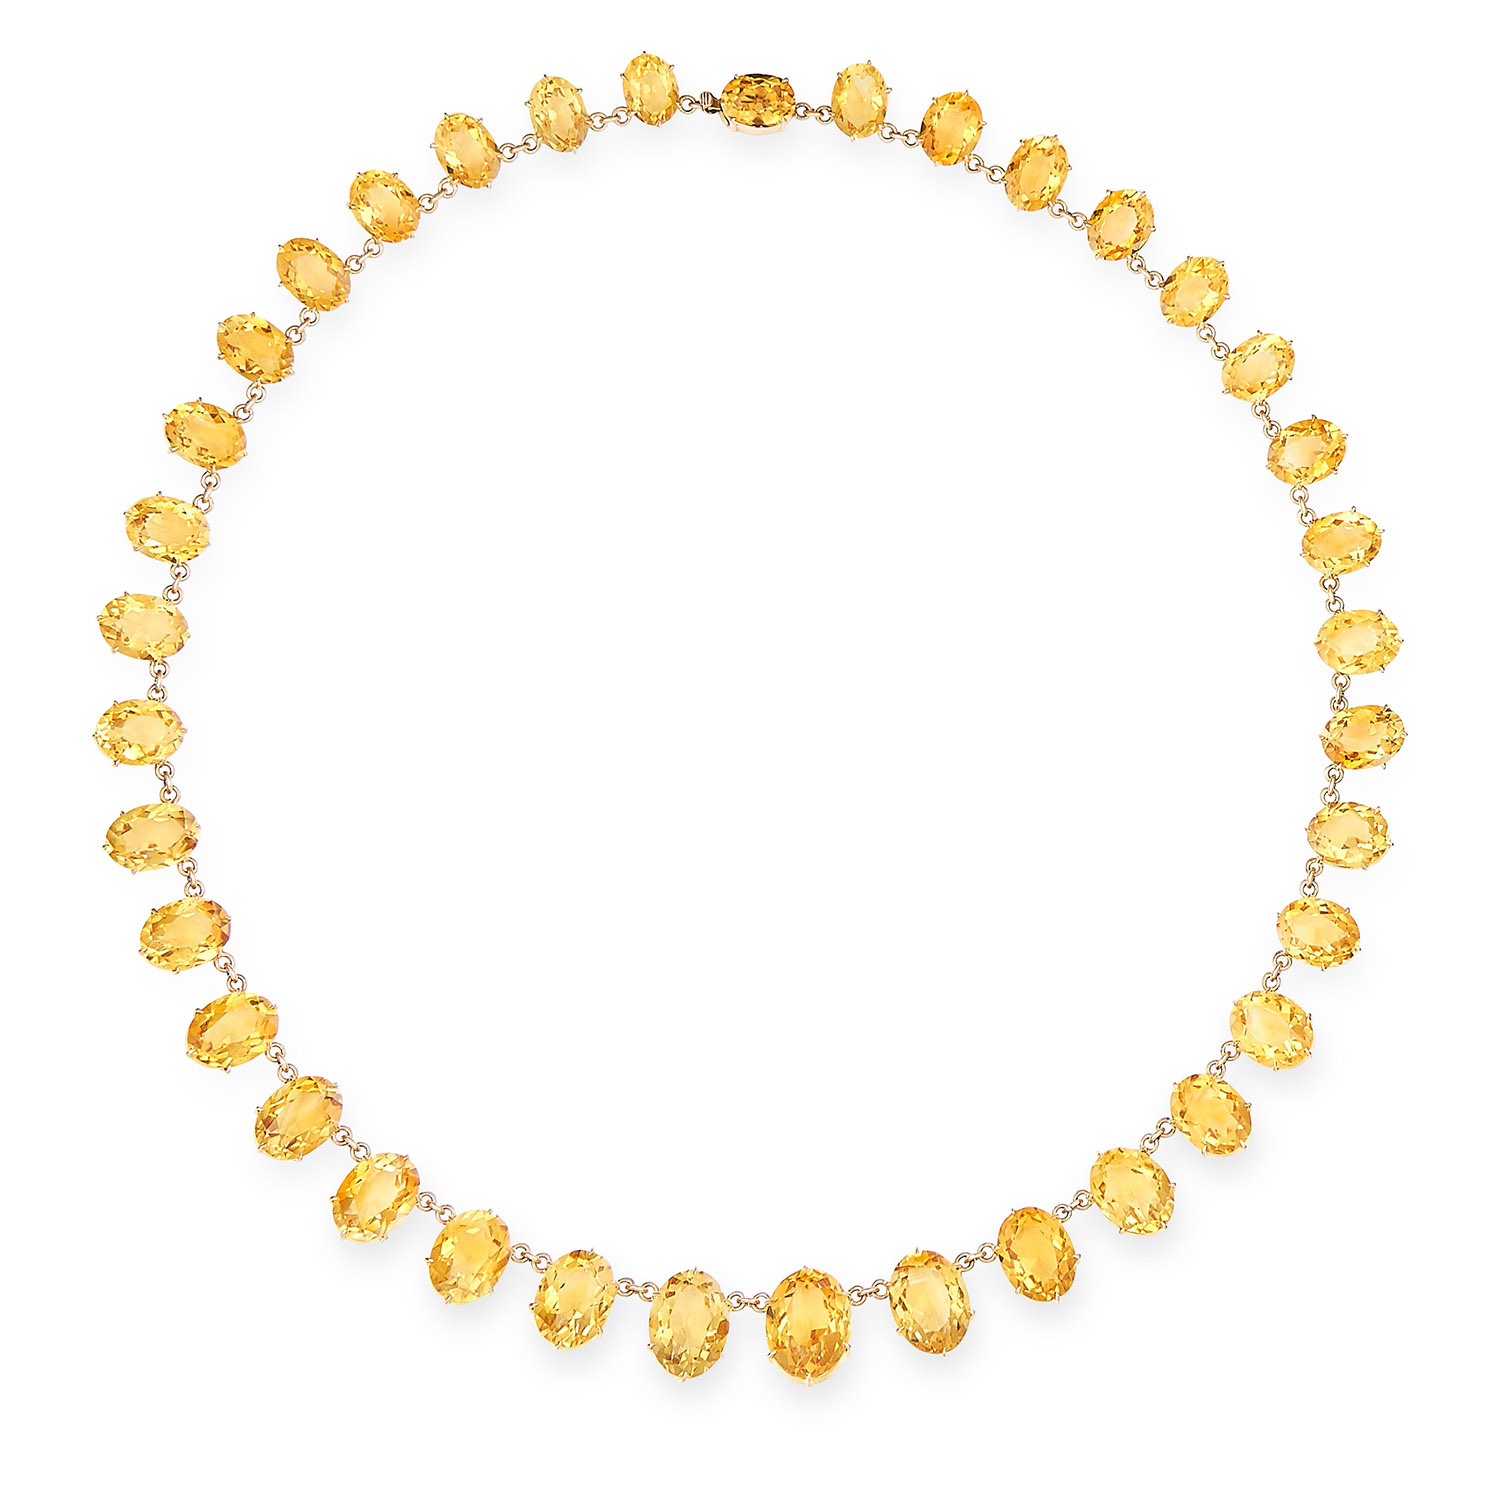 ANTIQUE CITRINE RIVIERA NECKLACE in yellow gold, formed of graduating oval cut citrine links,